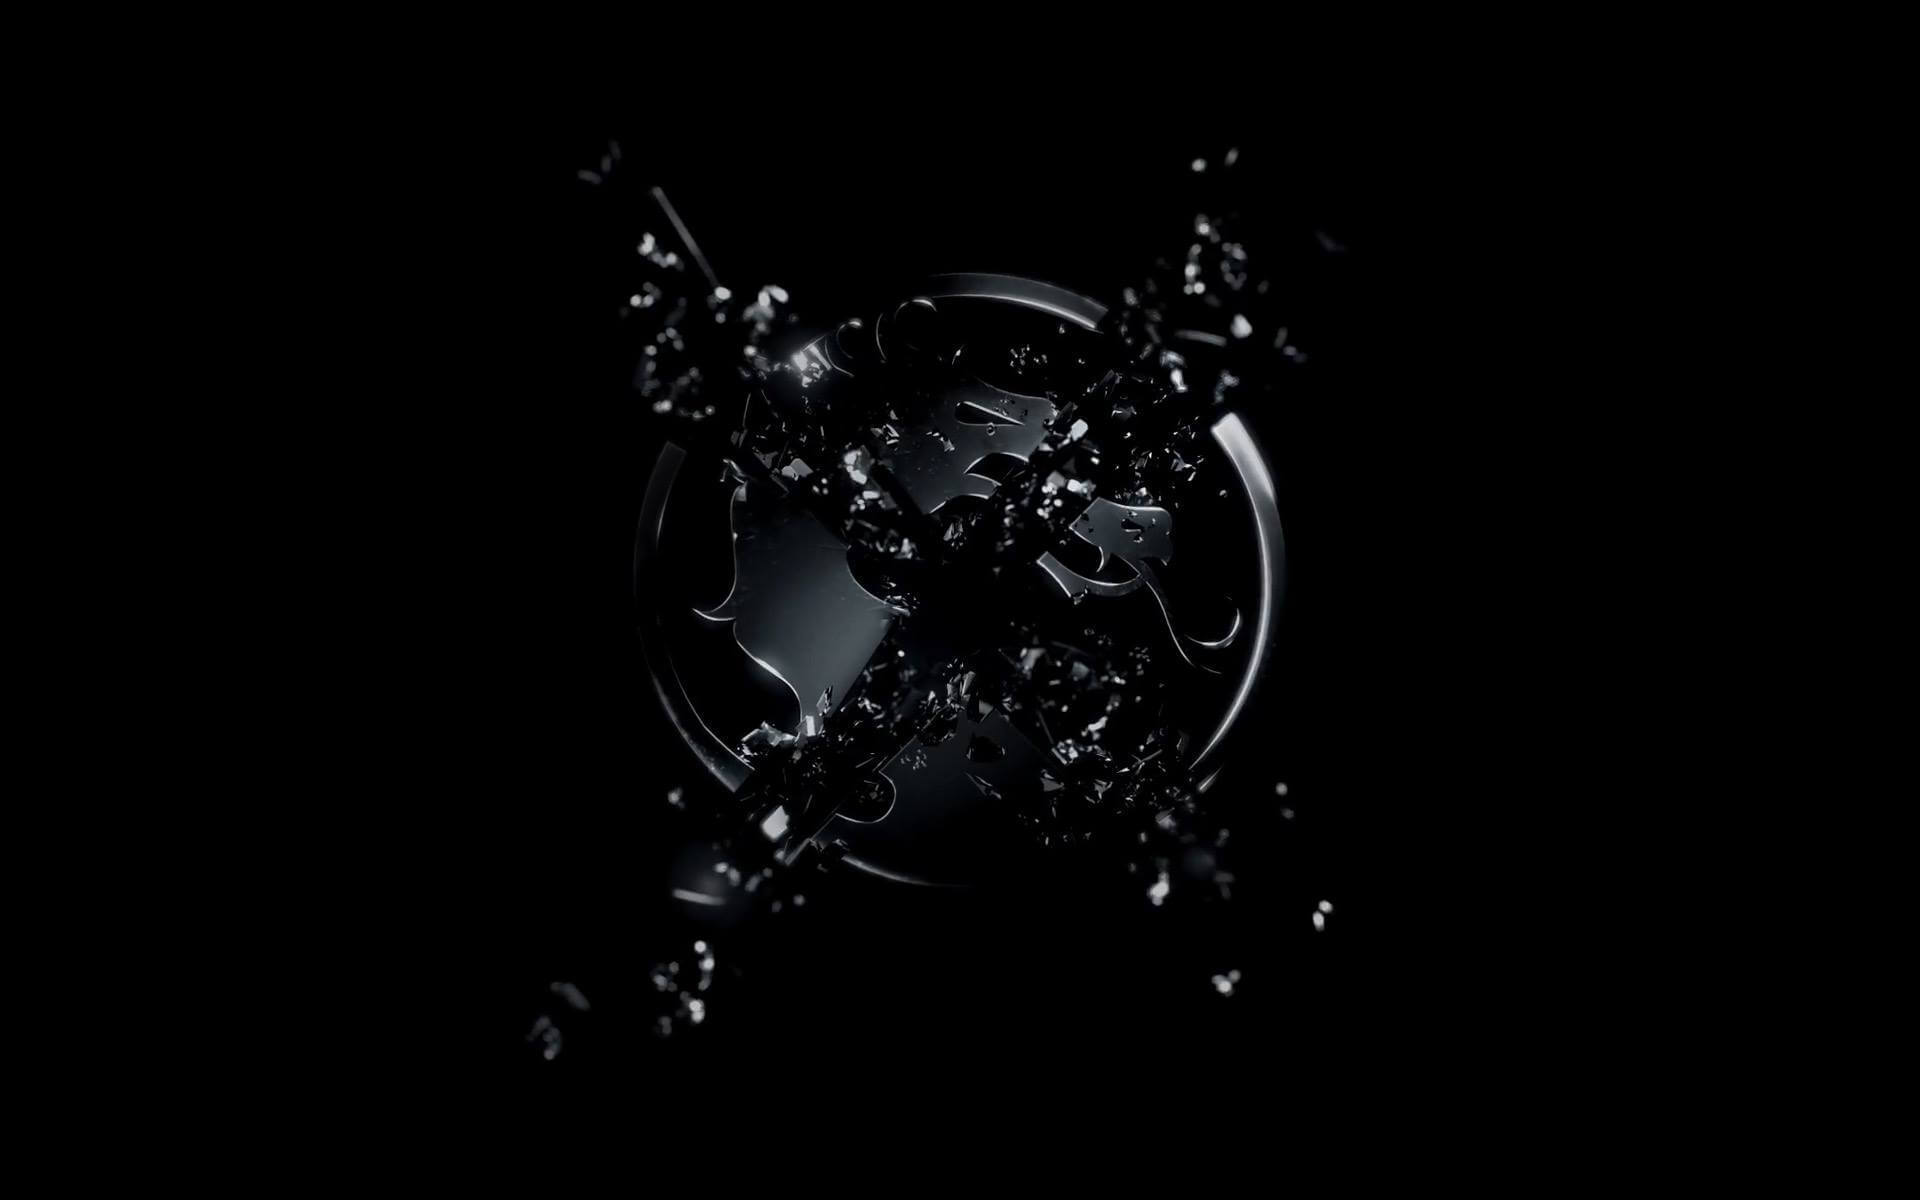 Mortal Kombat X Teaser Introducing Four New DLC Characters In 2016